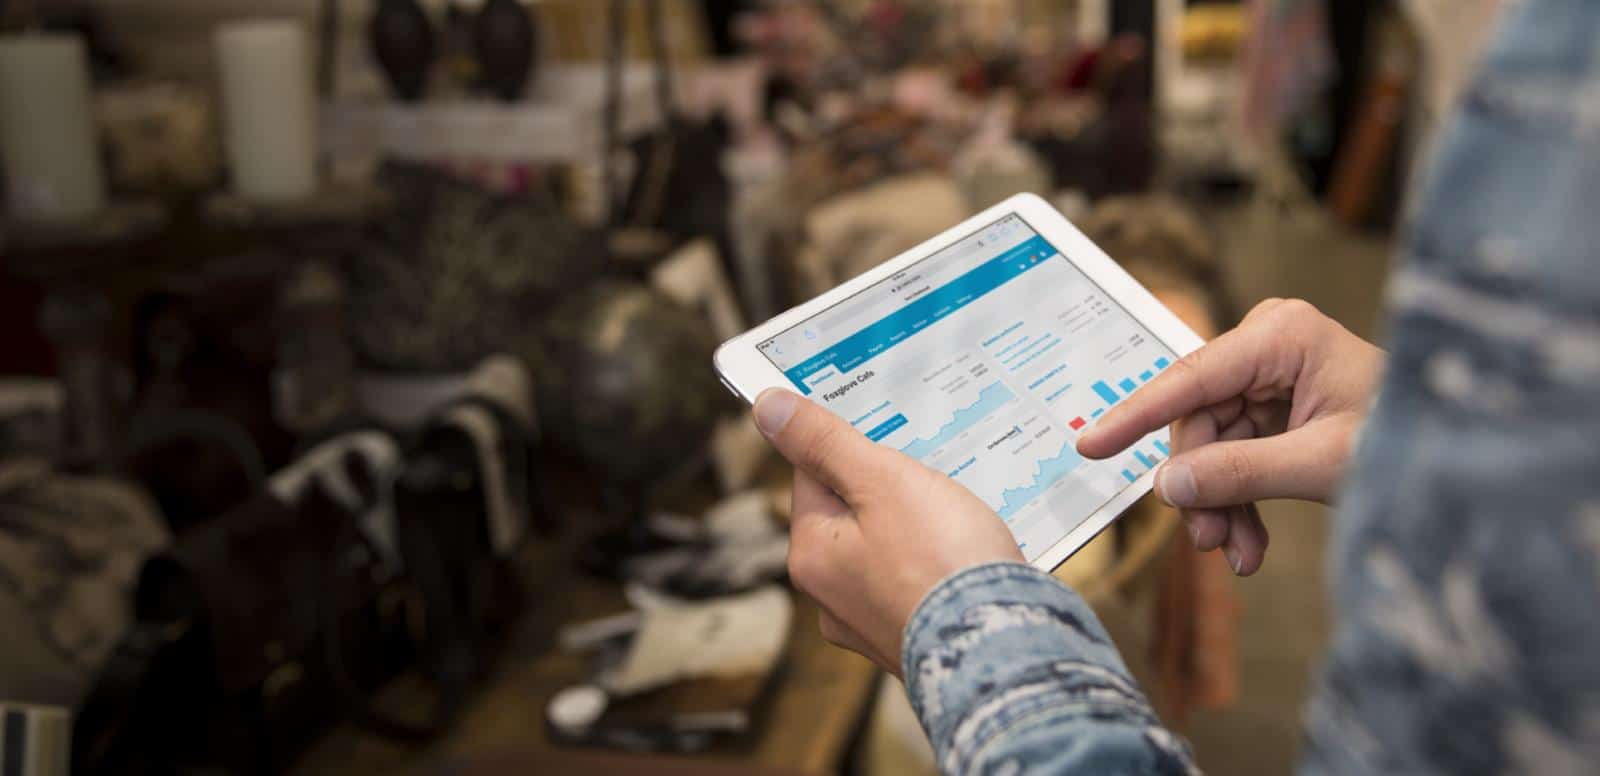 Xero Cloud Accounting on an iPad